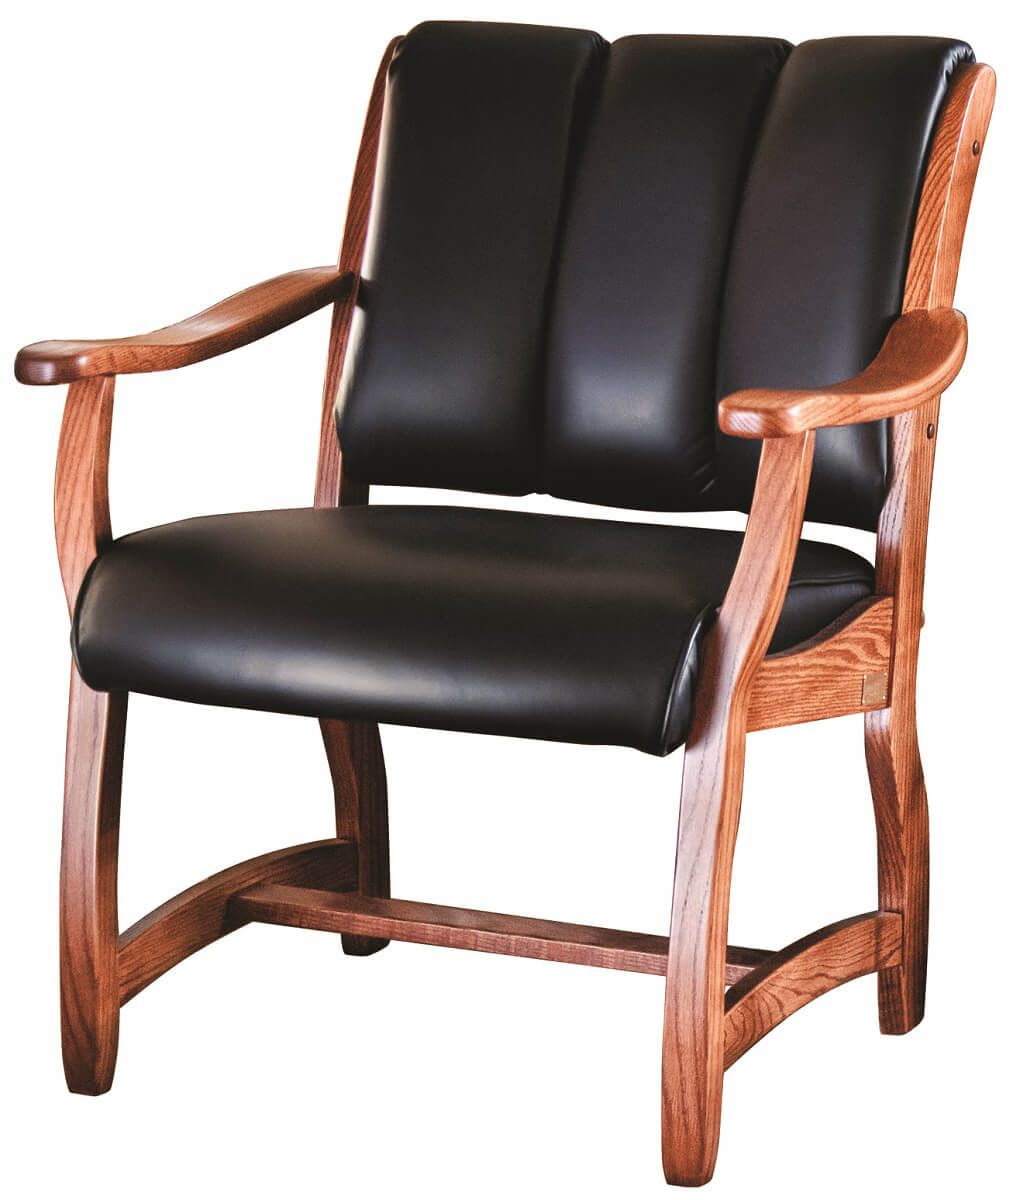 Roslyn Client Chair with Leather Upholstery